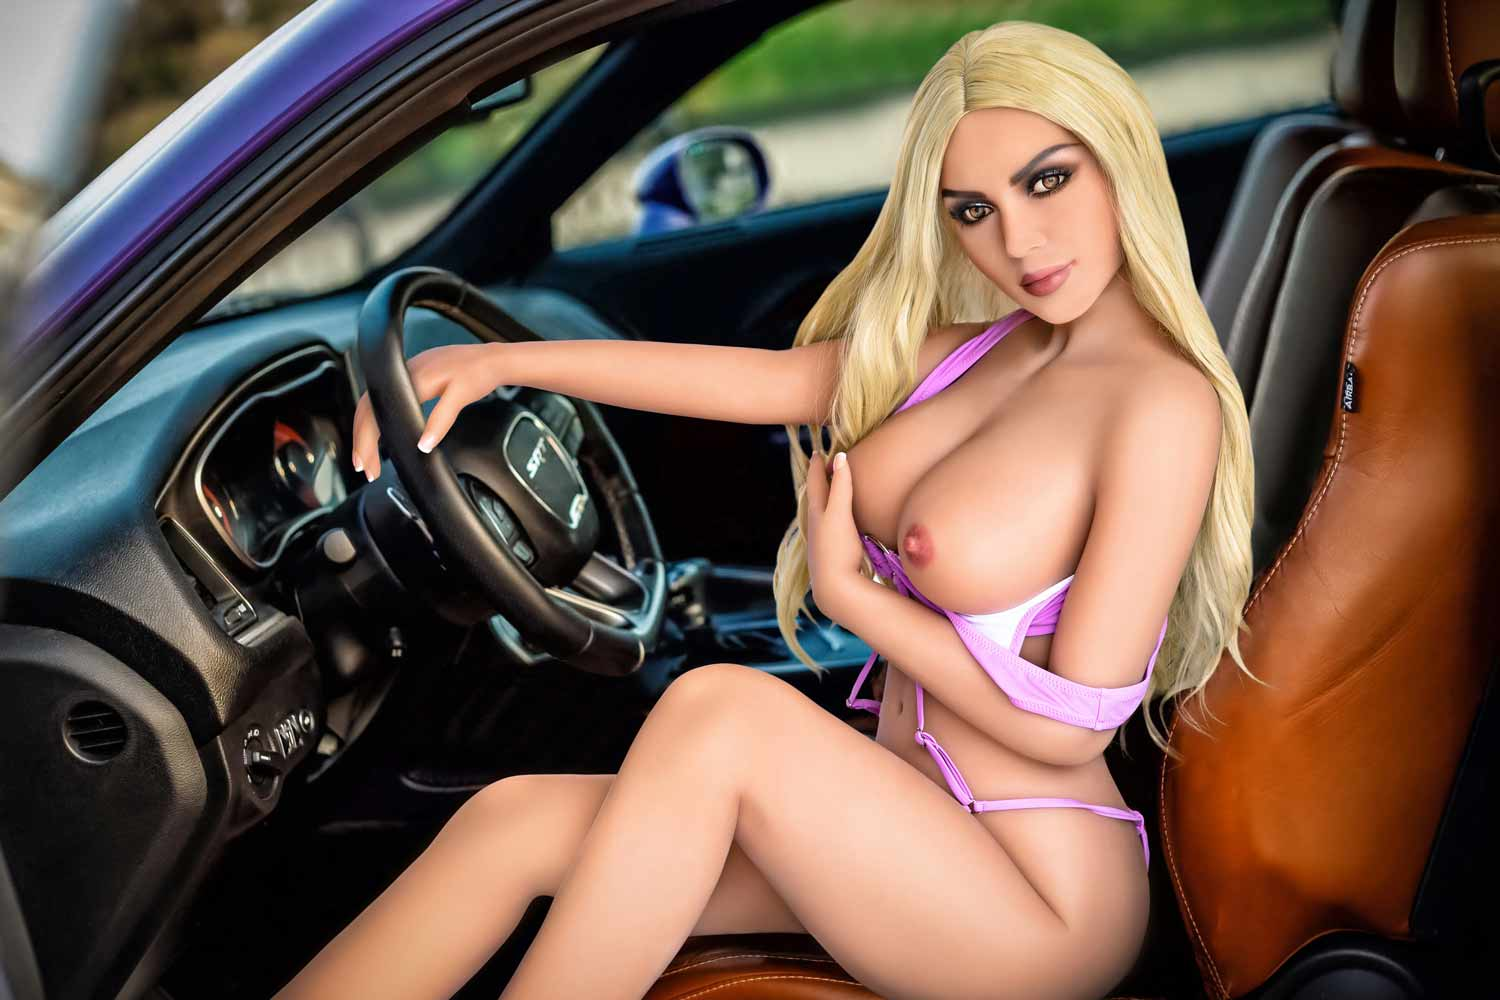 Sex doll with hands on steering wheel